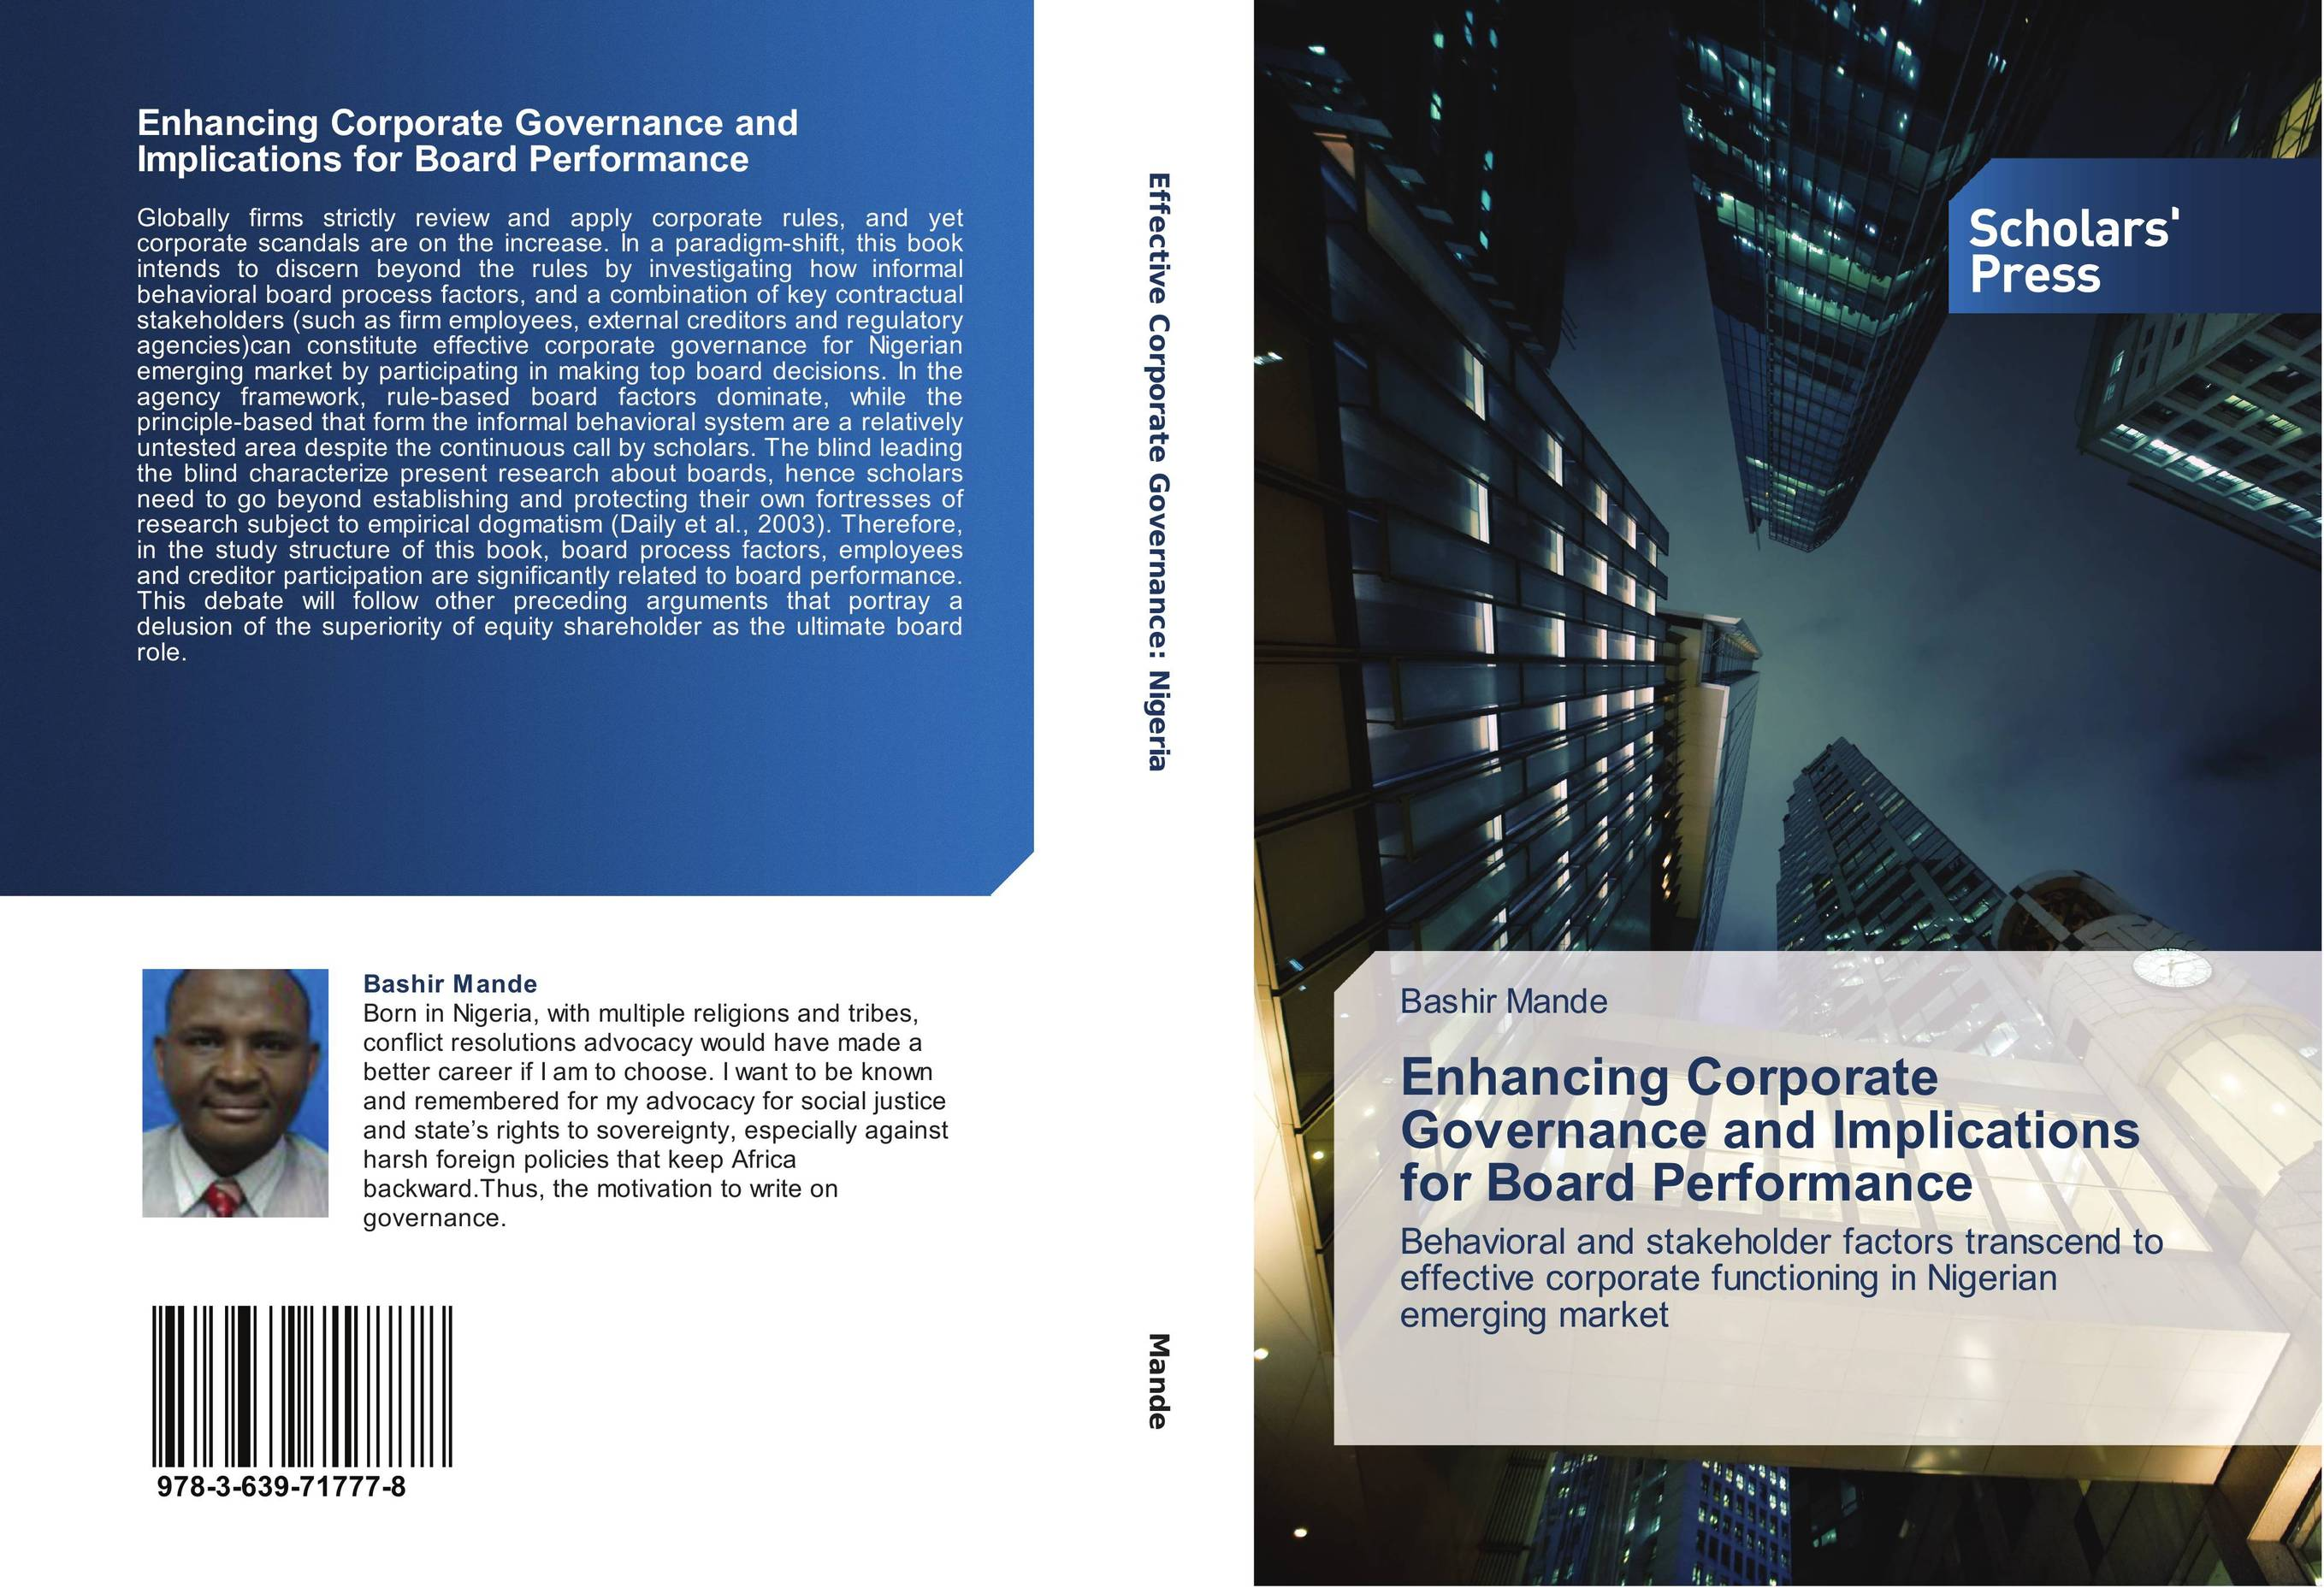 does corporate governance enhance firm performance Private negotiation, corporate governance and firms' financial performance: a major reason why extant research does not show the nature of the relationship between negotiations by institutional shareholders and firms is that the details of negotiations are normally not shared with outsiders [22.